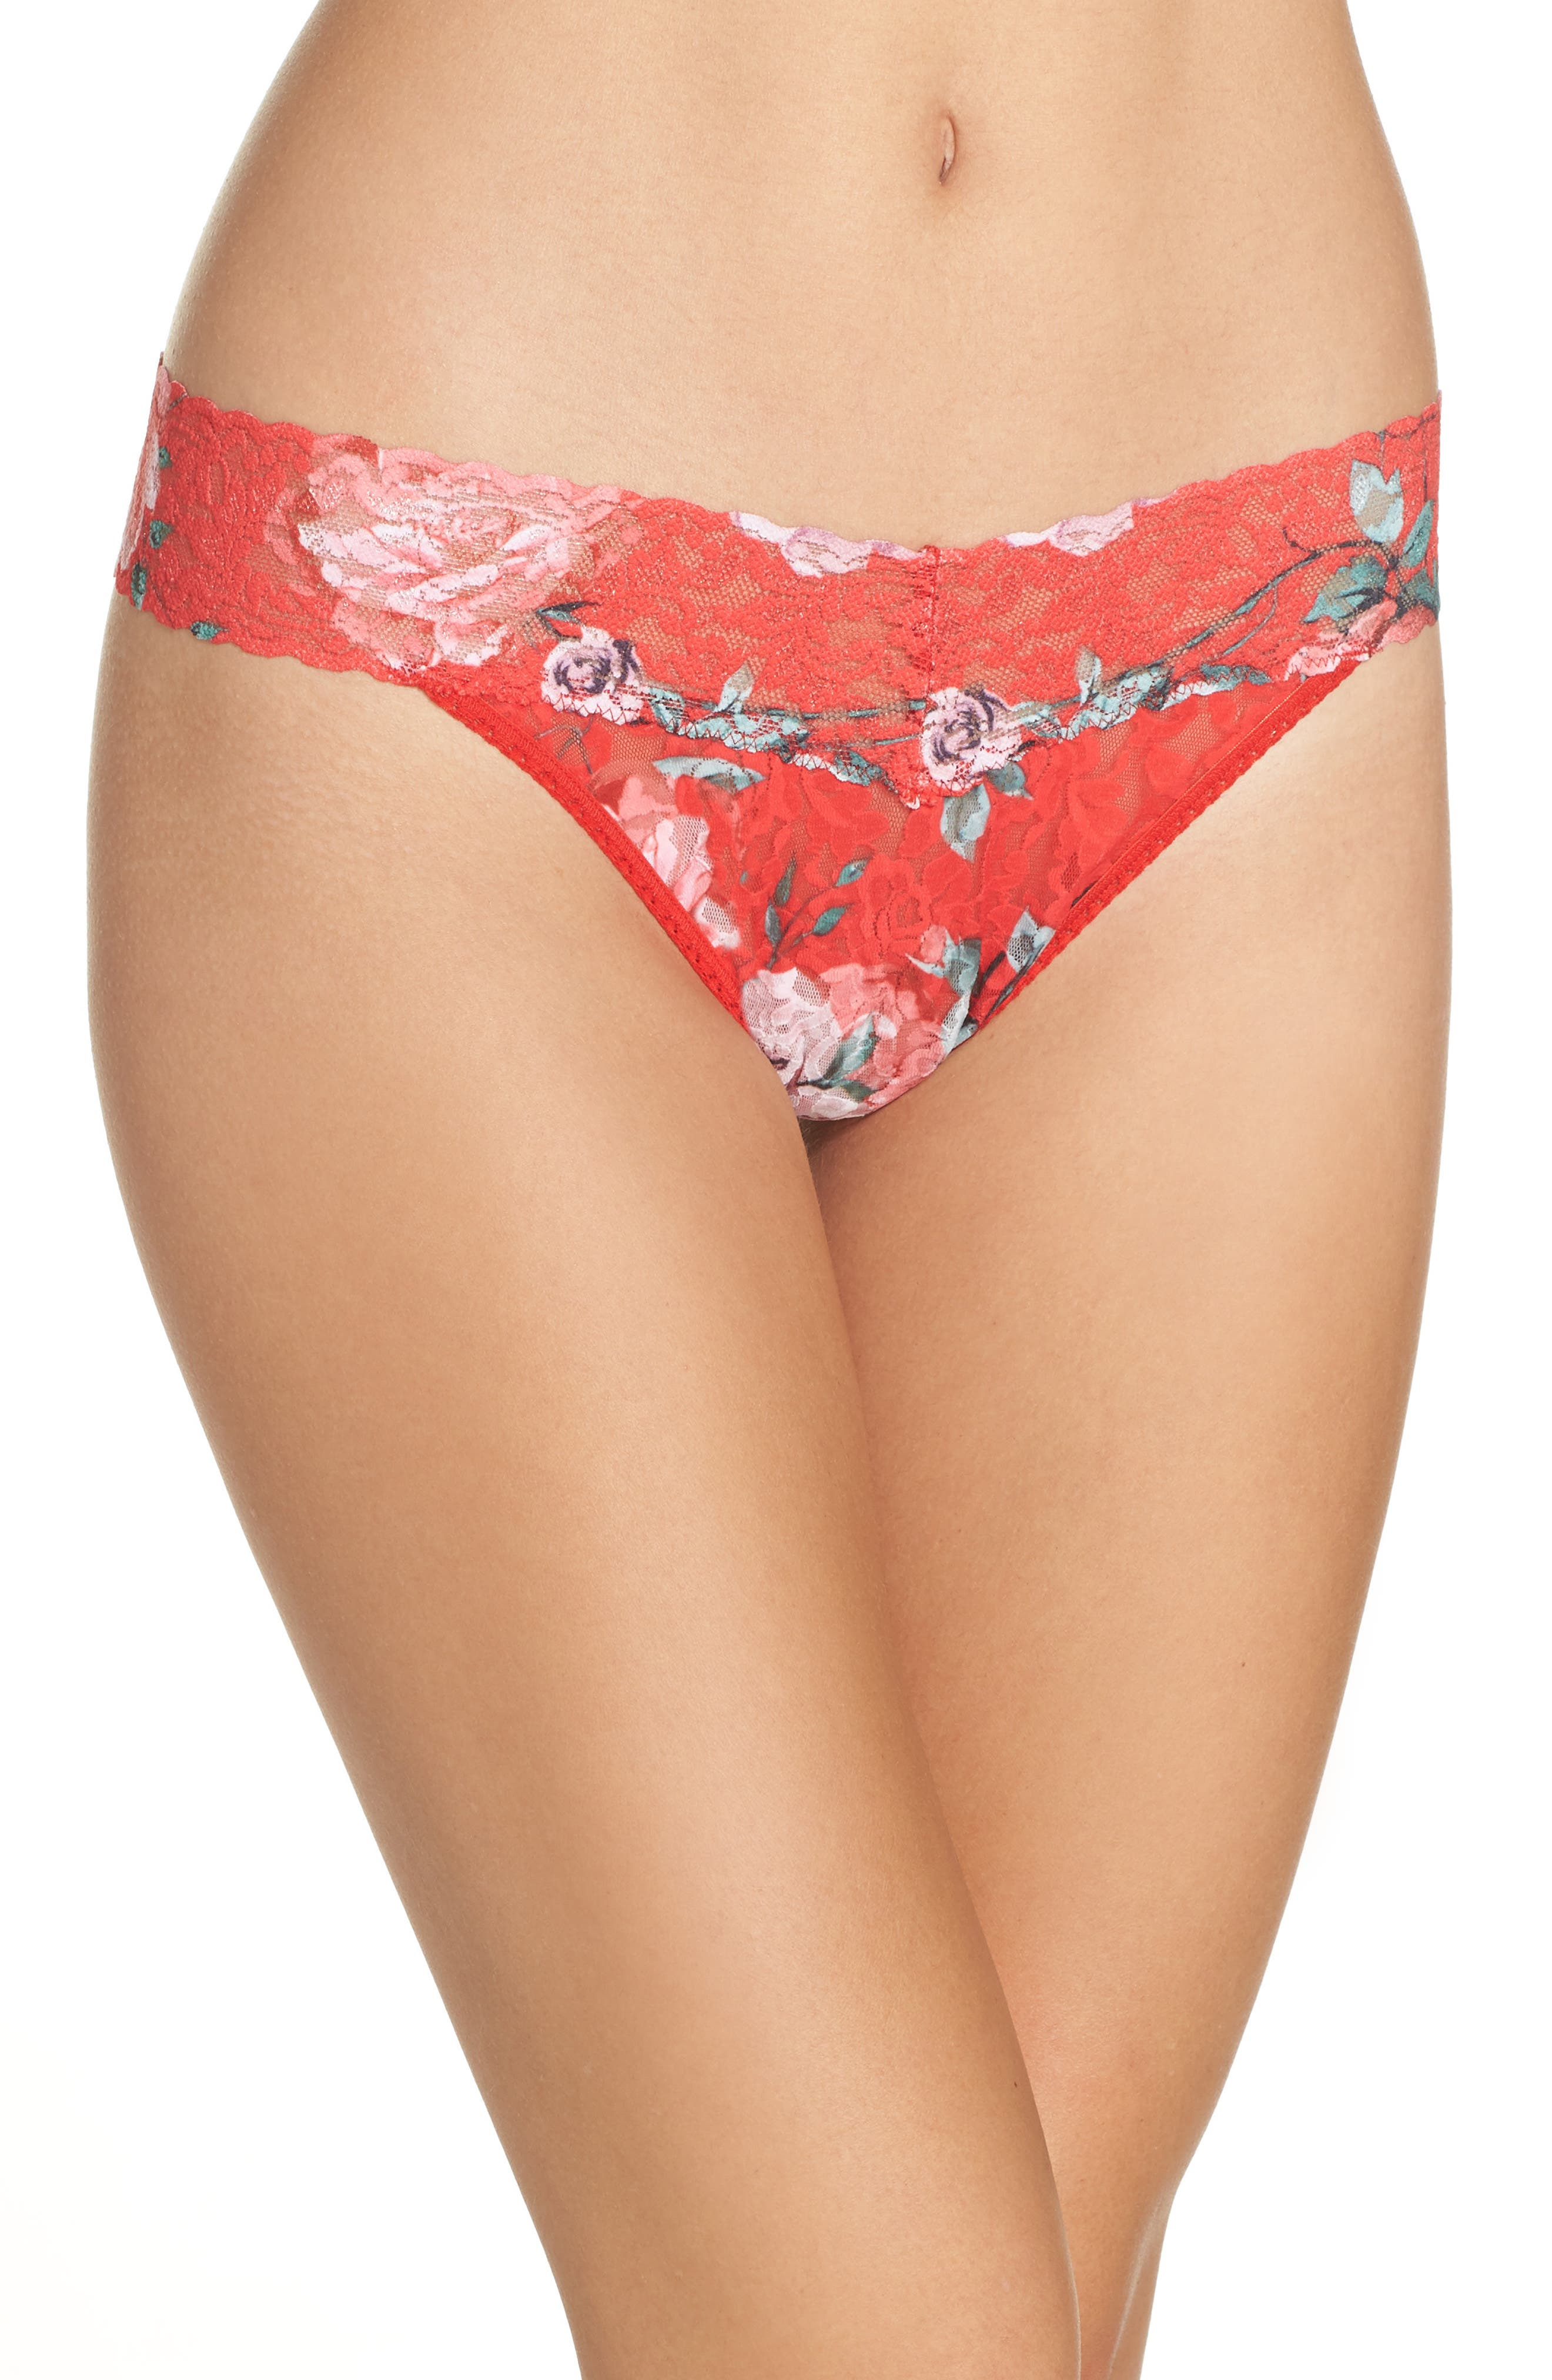 Holiday Blossom Original Rise Thong in Red Multi